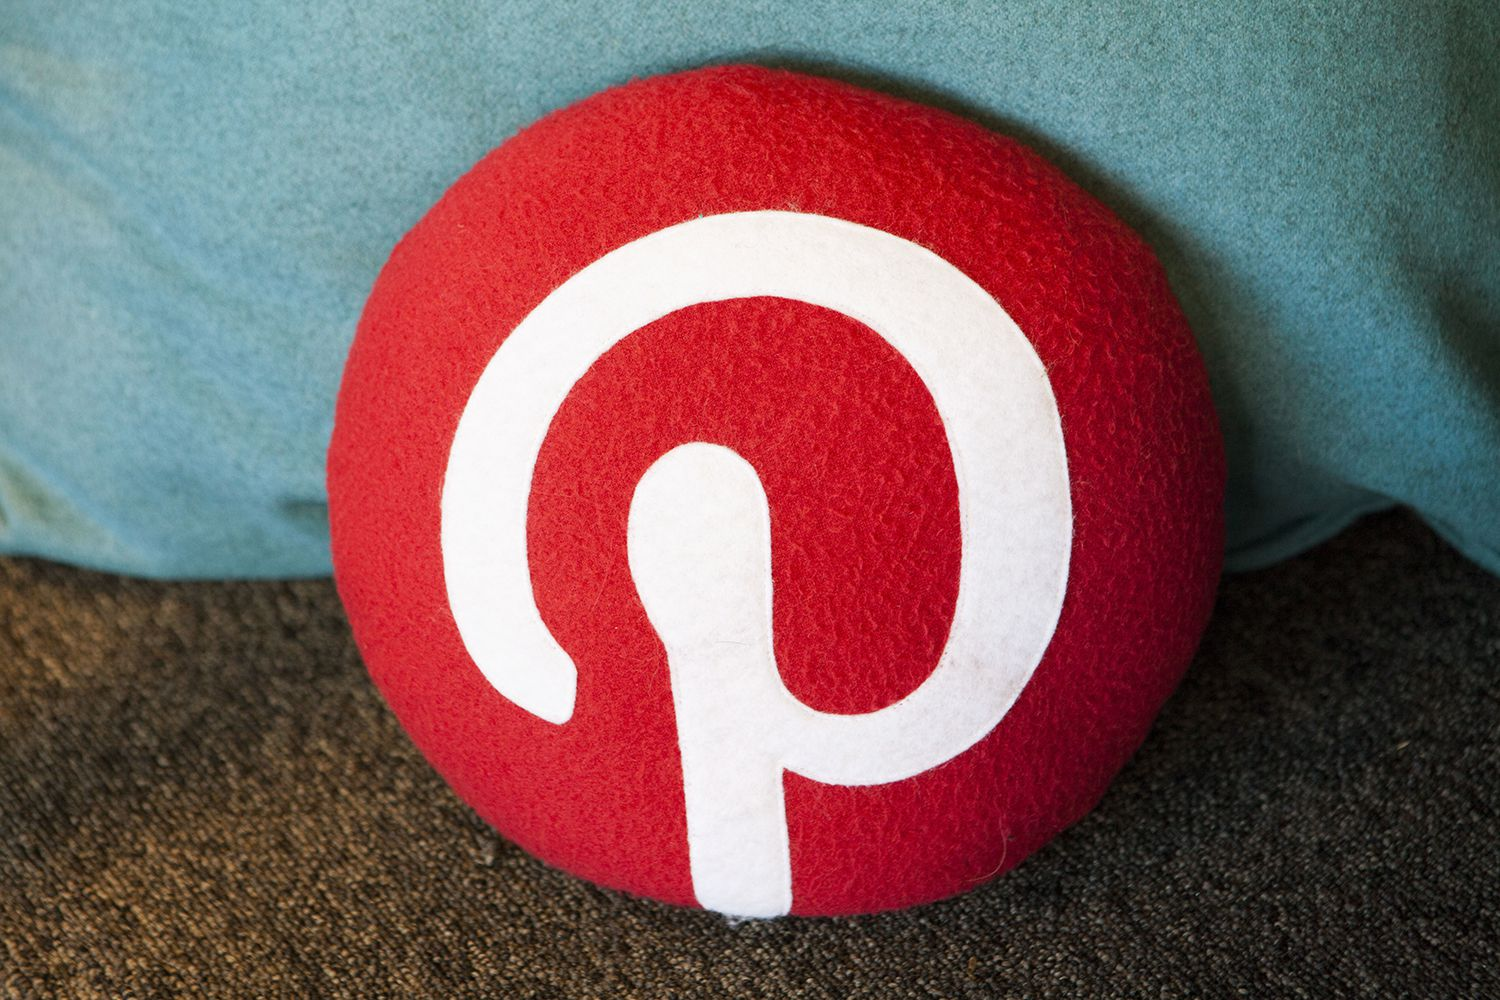 Pinterest sta per avere concorrenza?